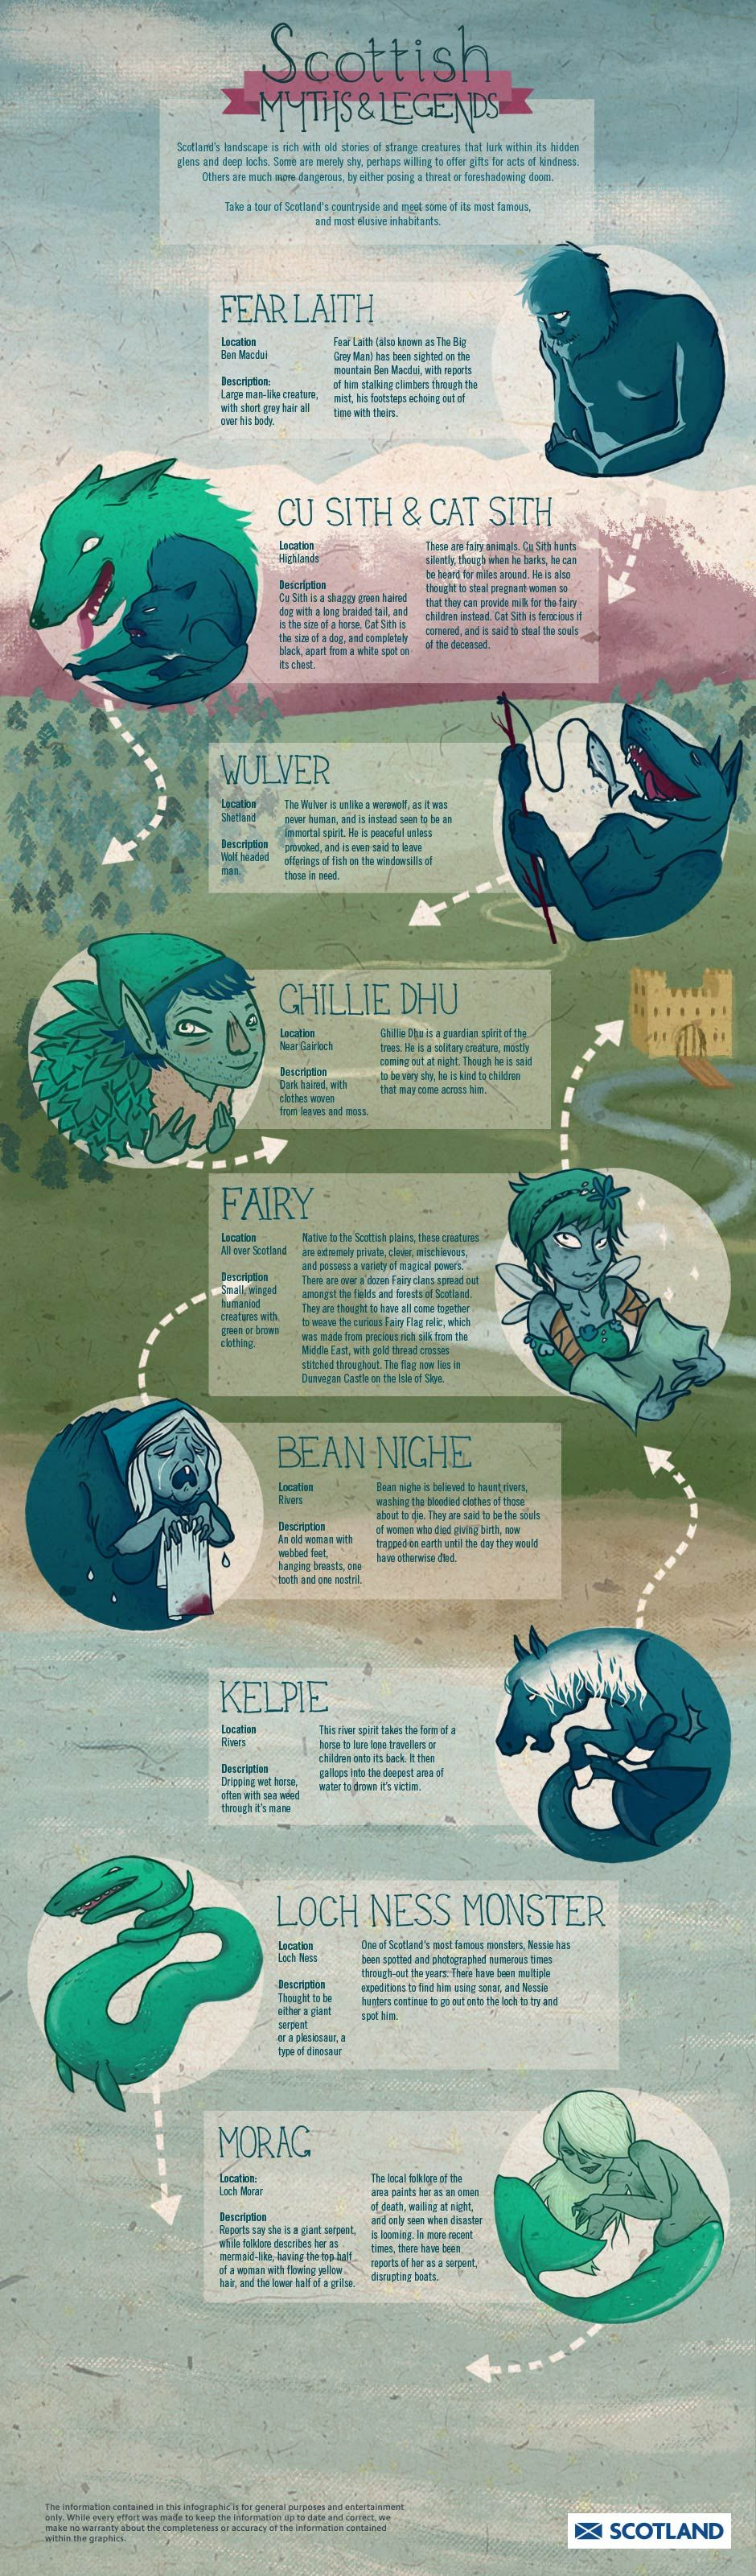 Scottish myths and legends infographic fairies loch ness monster